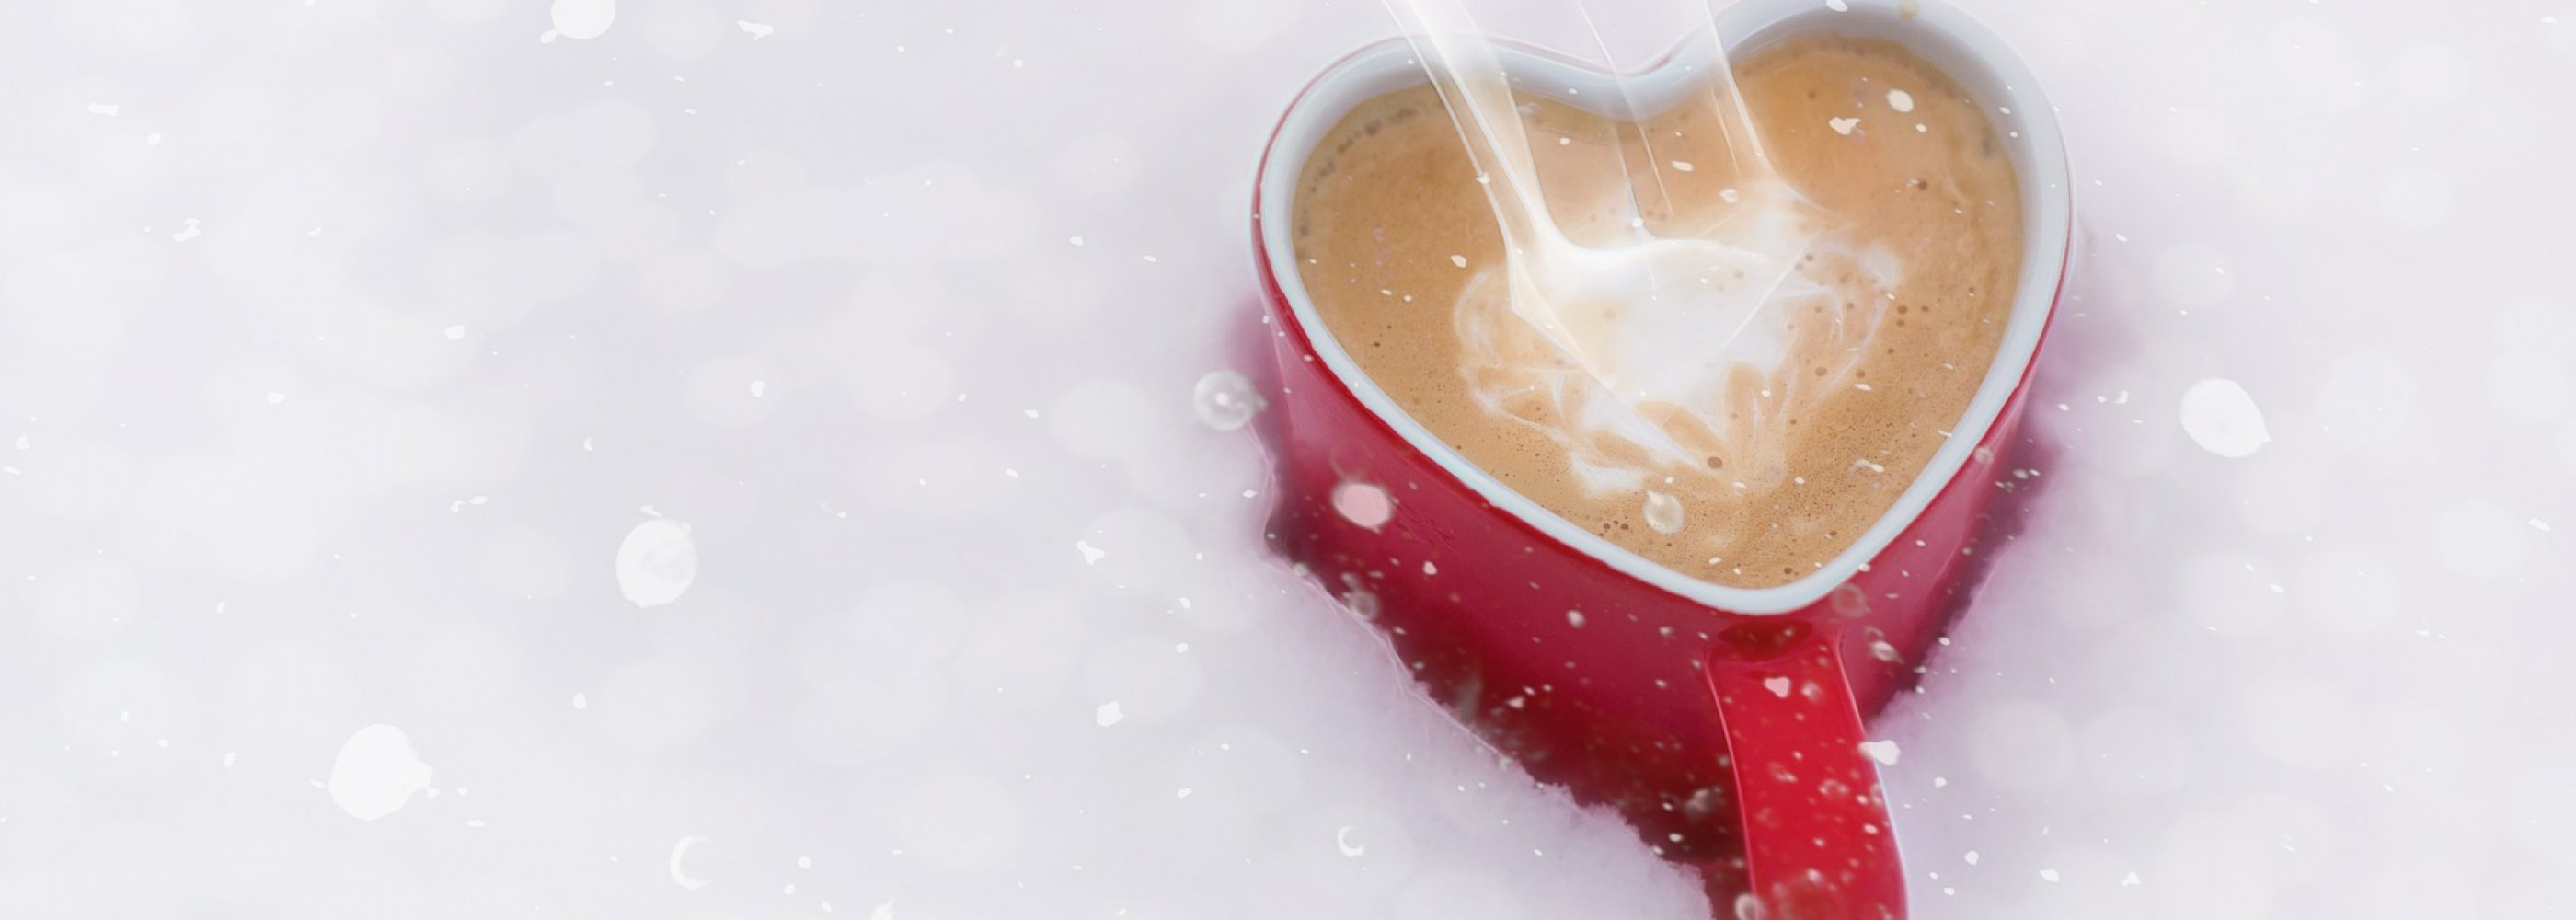 snow and coffee